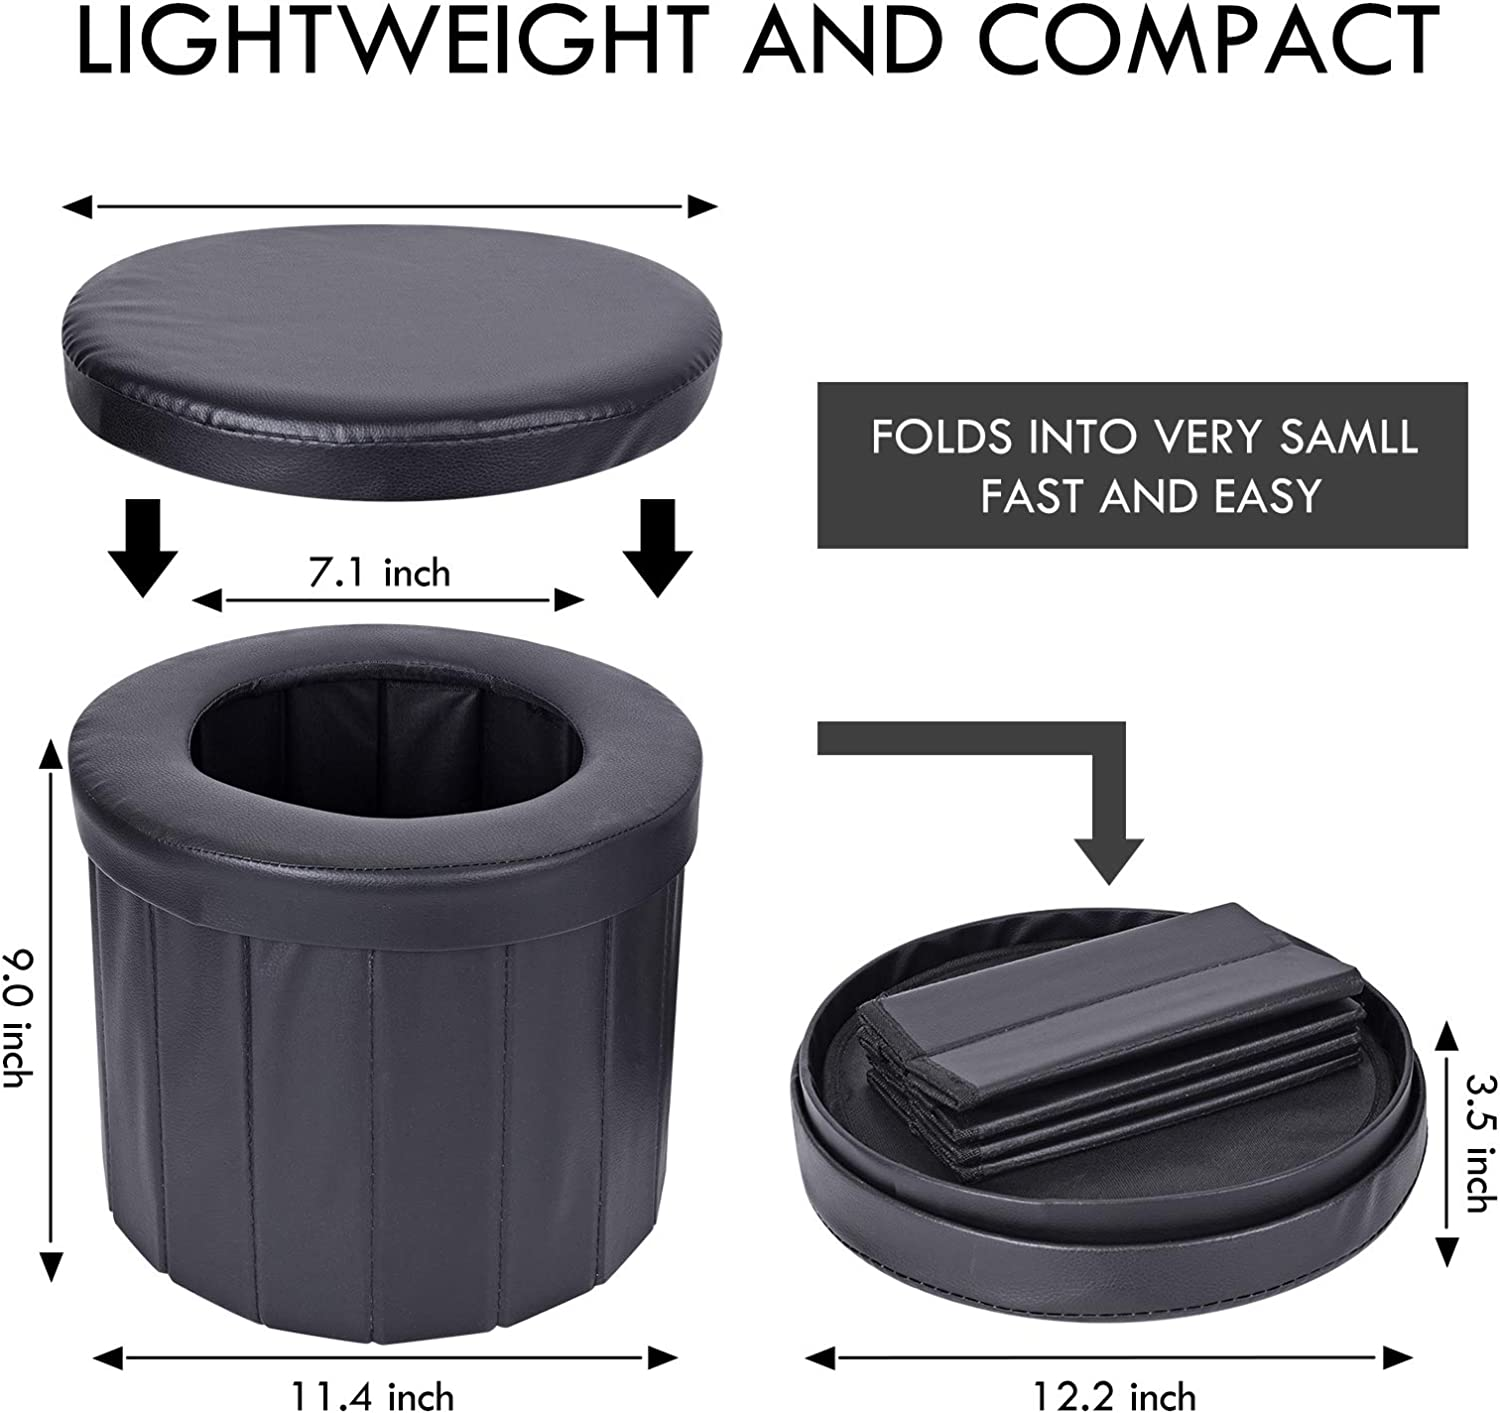 Hiking Boating,Long Trips KDD Portable Toilet Camping Outdoor Car Folding Stool,Toilet for Camping Traffic jam